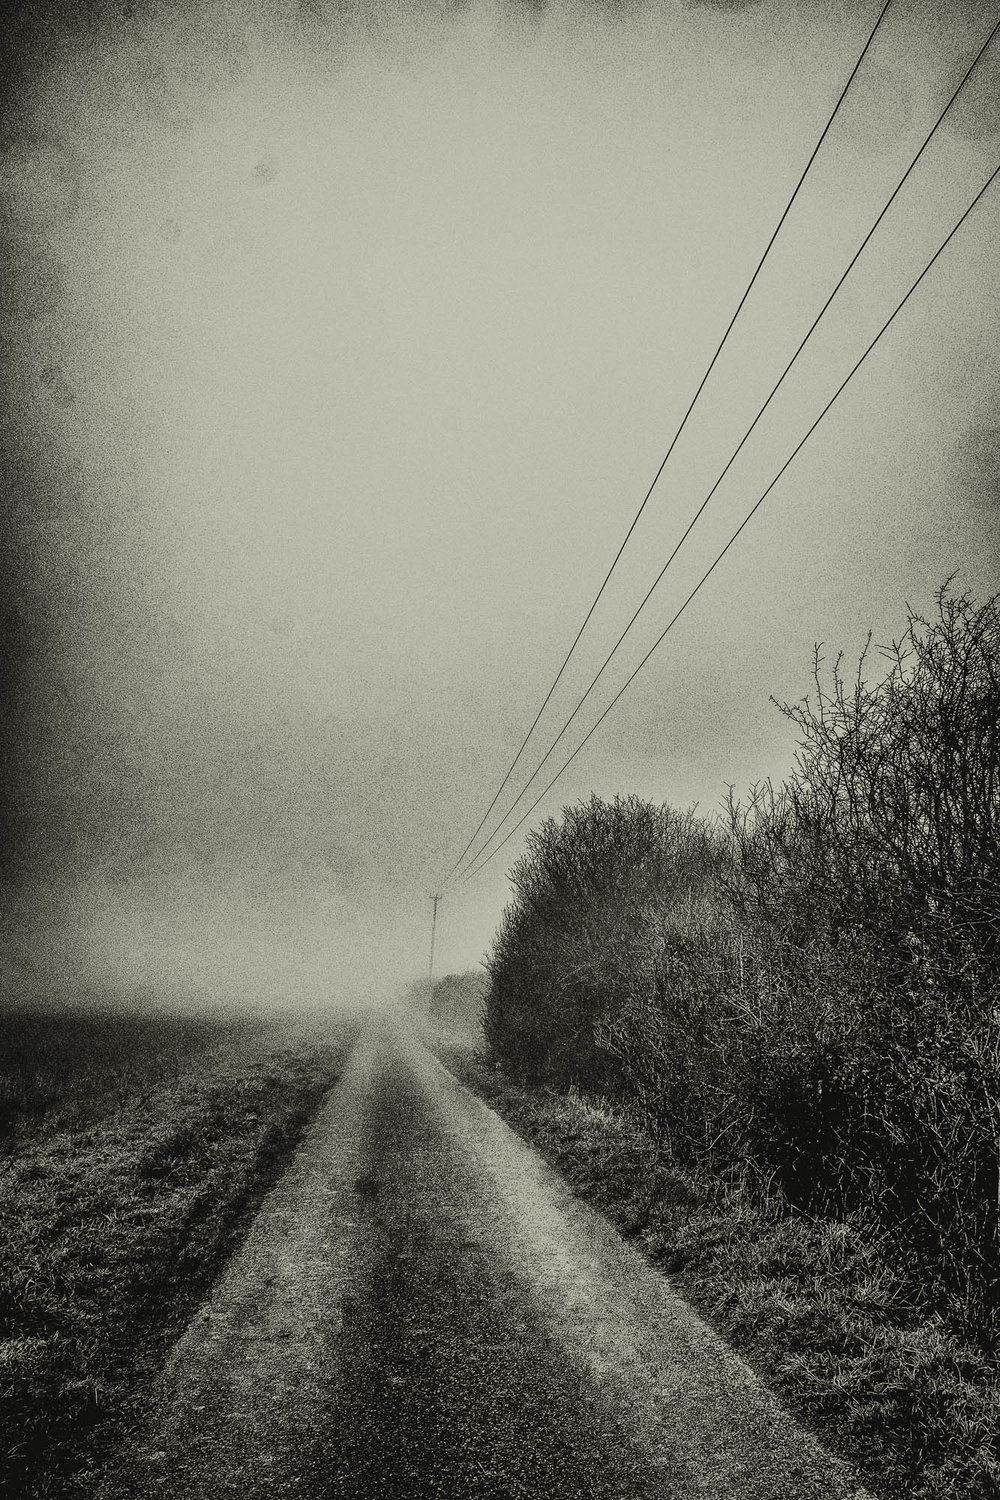 Wires in the mist